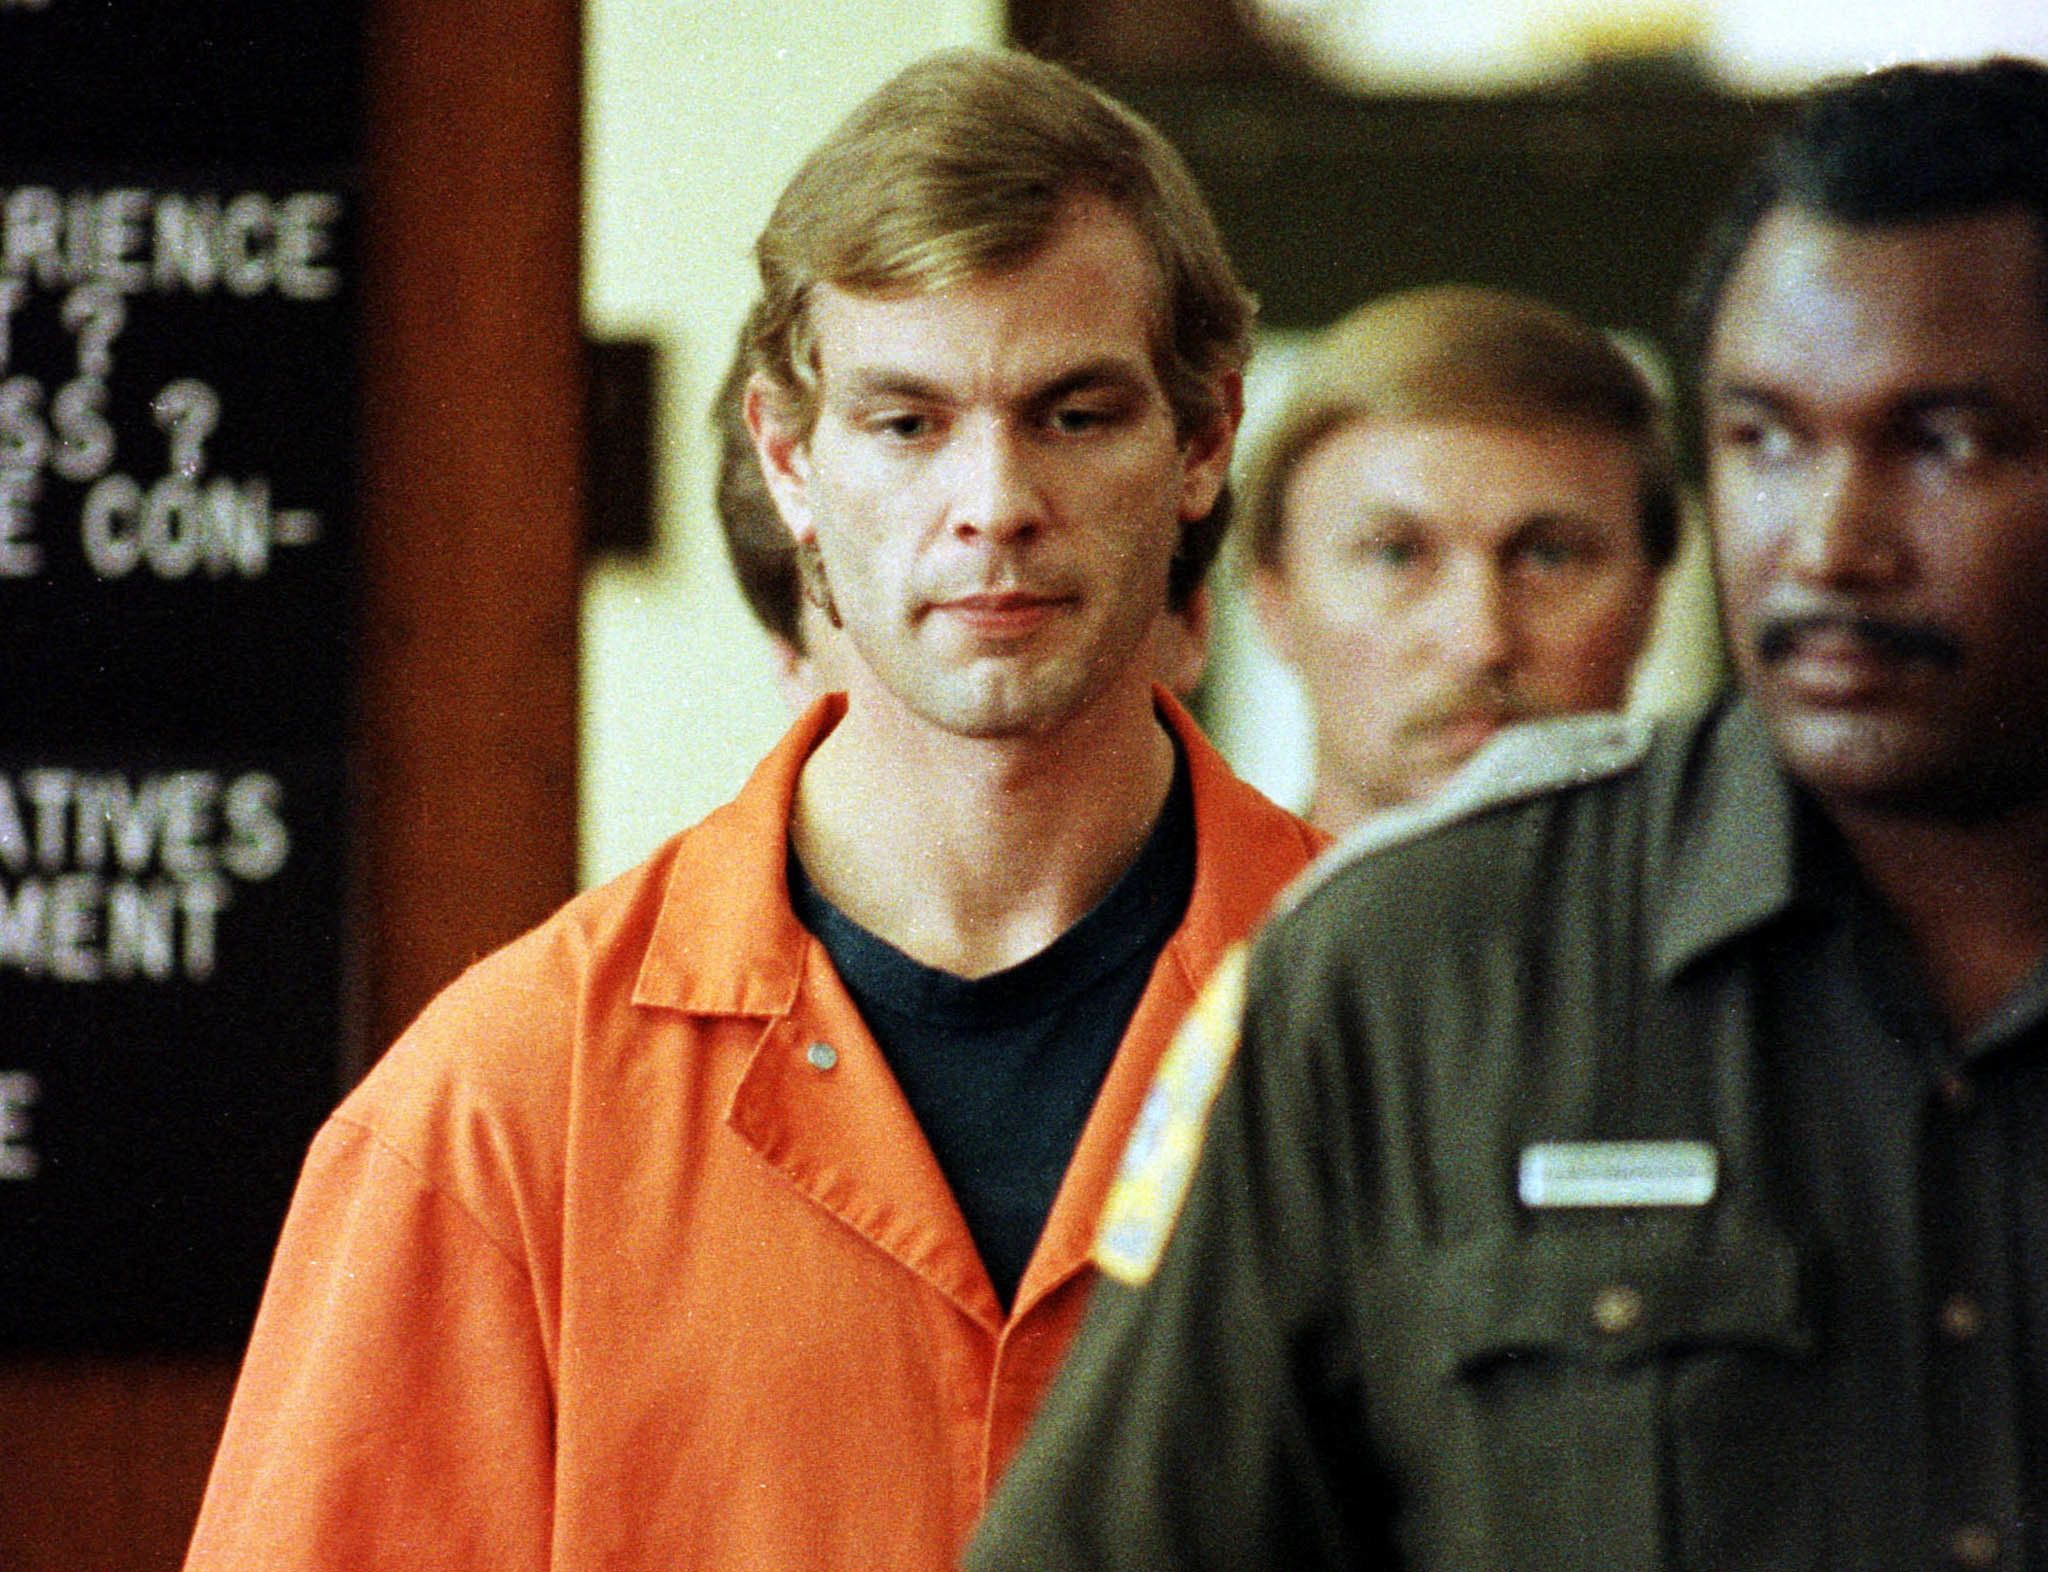 Serial killer Jeffrey Dahmer is escorted into a Milwaukee County Circuit Court by a Milwaukee County Sheriffs Deputy for his second appearance in this July, 1991, file photo. Dahmer was found guility of the murders of 16 young men, and sentenced to life in prison in February of 1992.  AF/JP